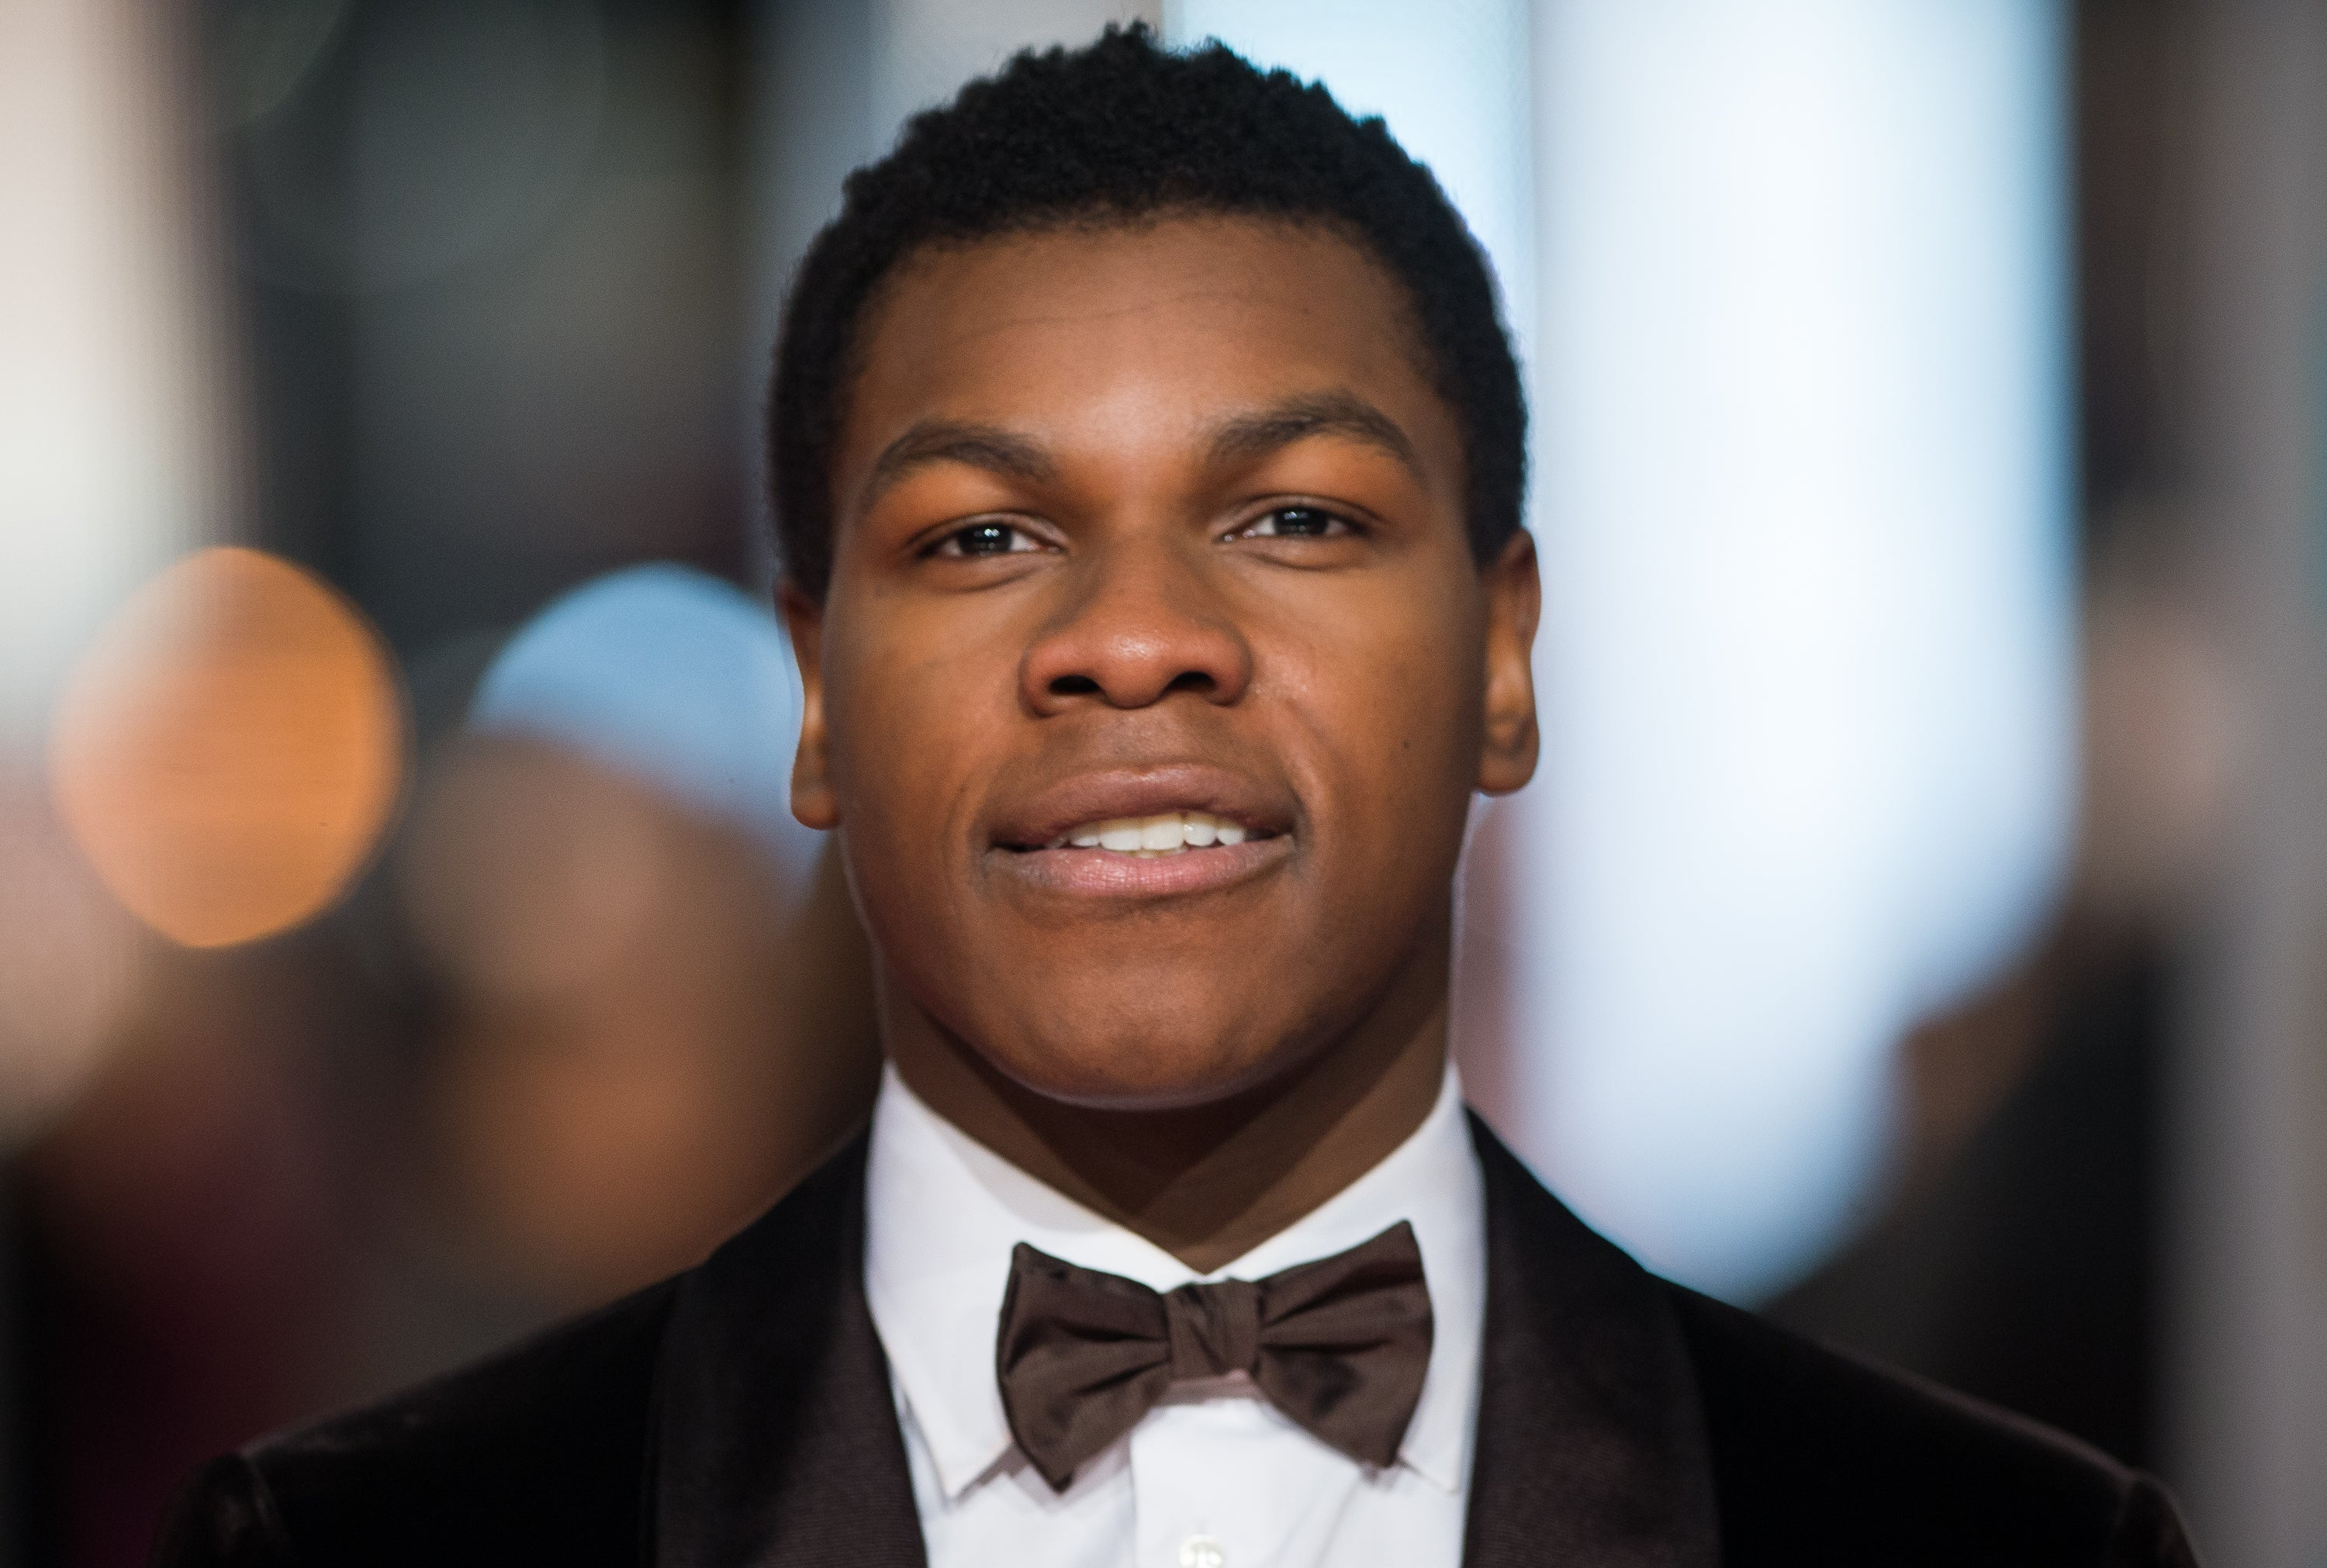 John Boyega tears up during Black Lives Matter protest speech: 'We don't know what George Floyd could have achieved'